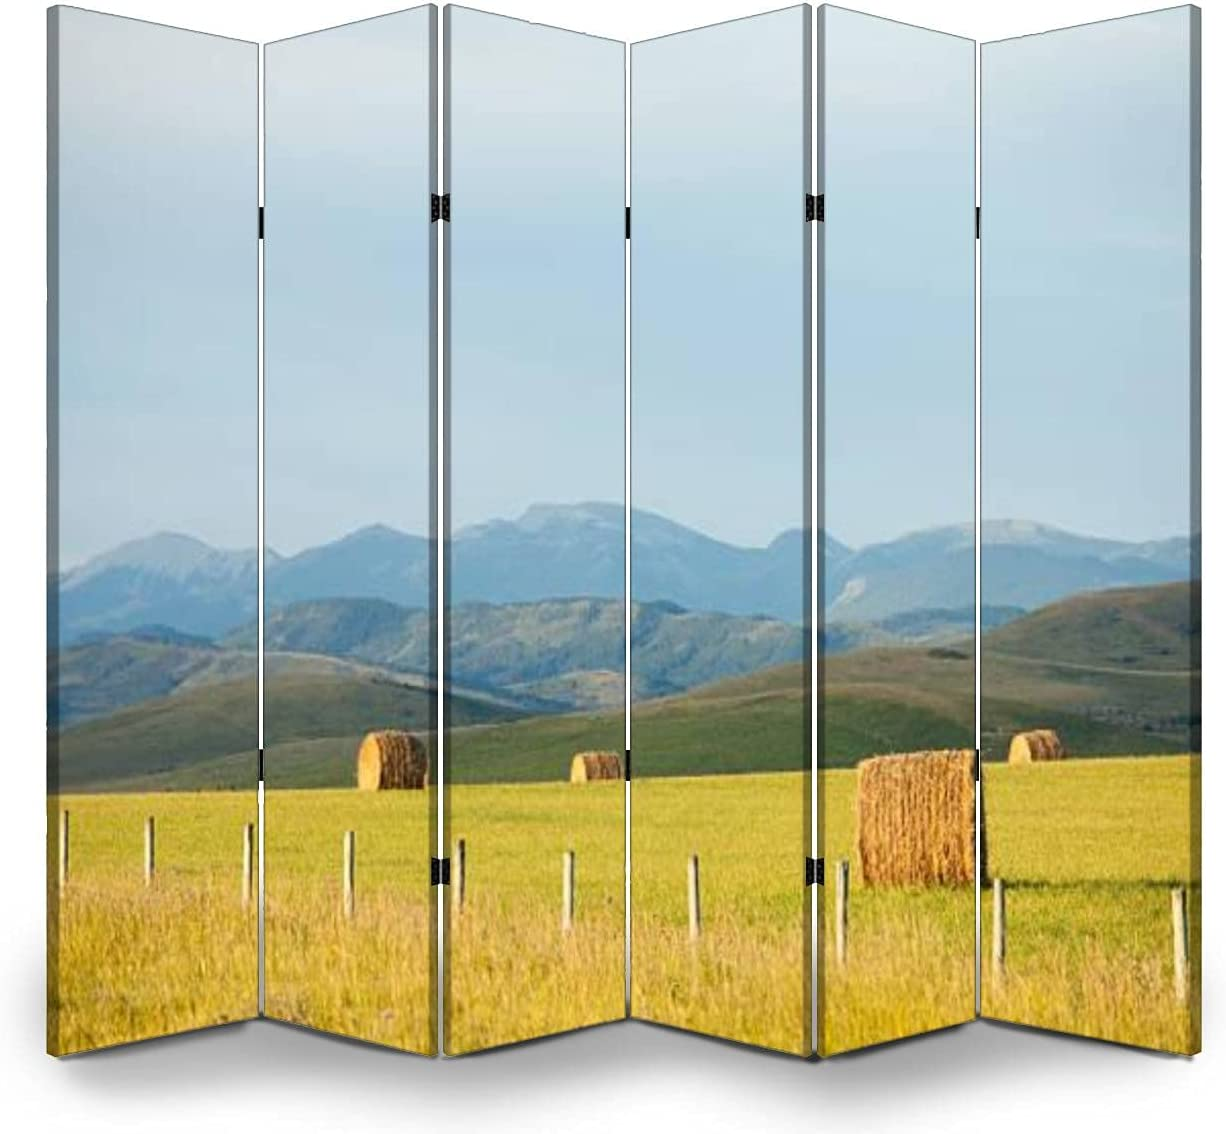 6 Panels Sales of SALE items from new works Room Divider Large discharge sale Screen Partition Rolling Foothil Beautiful